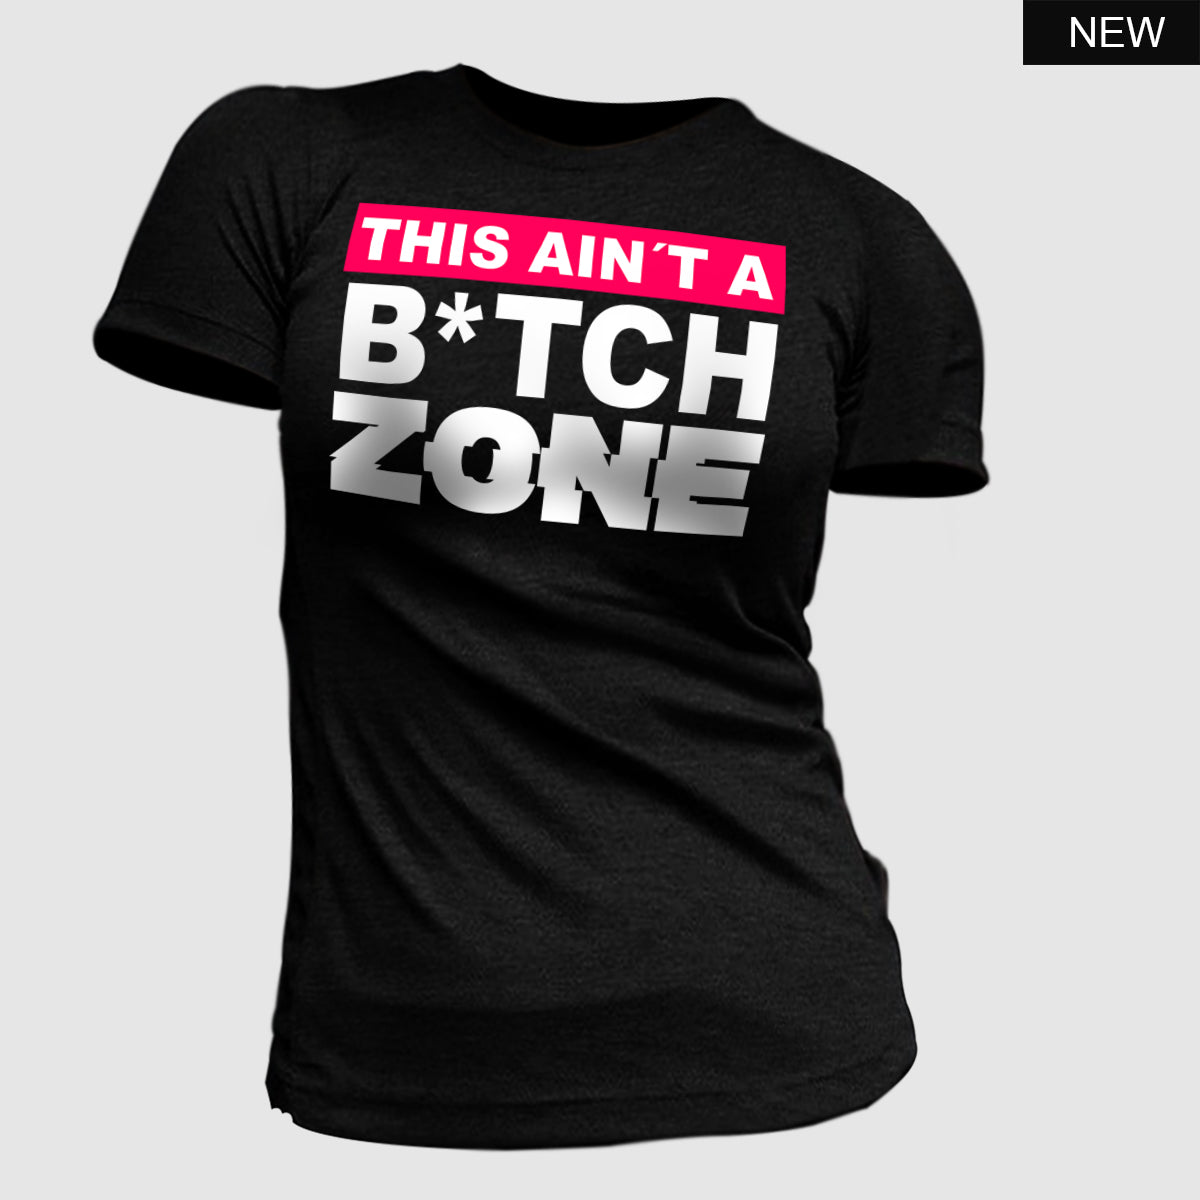 This Ain't A Bitch Zone I T-Shirt